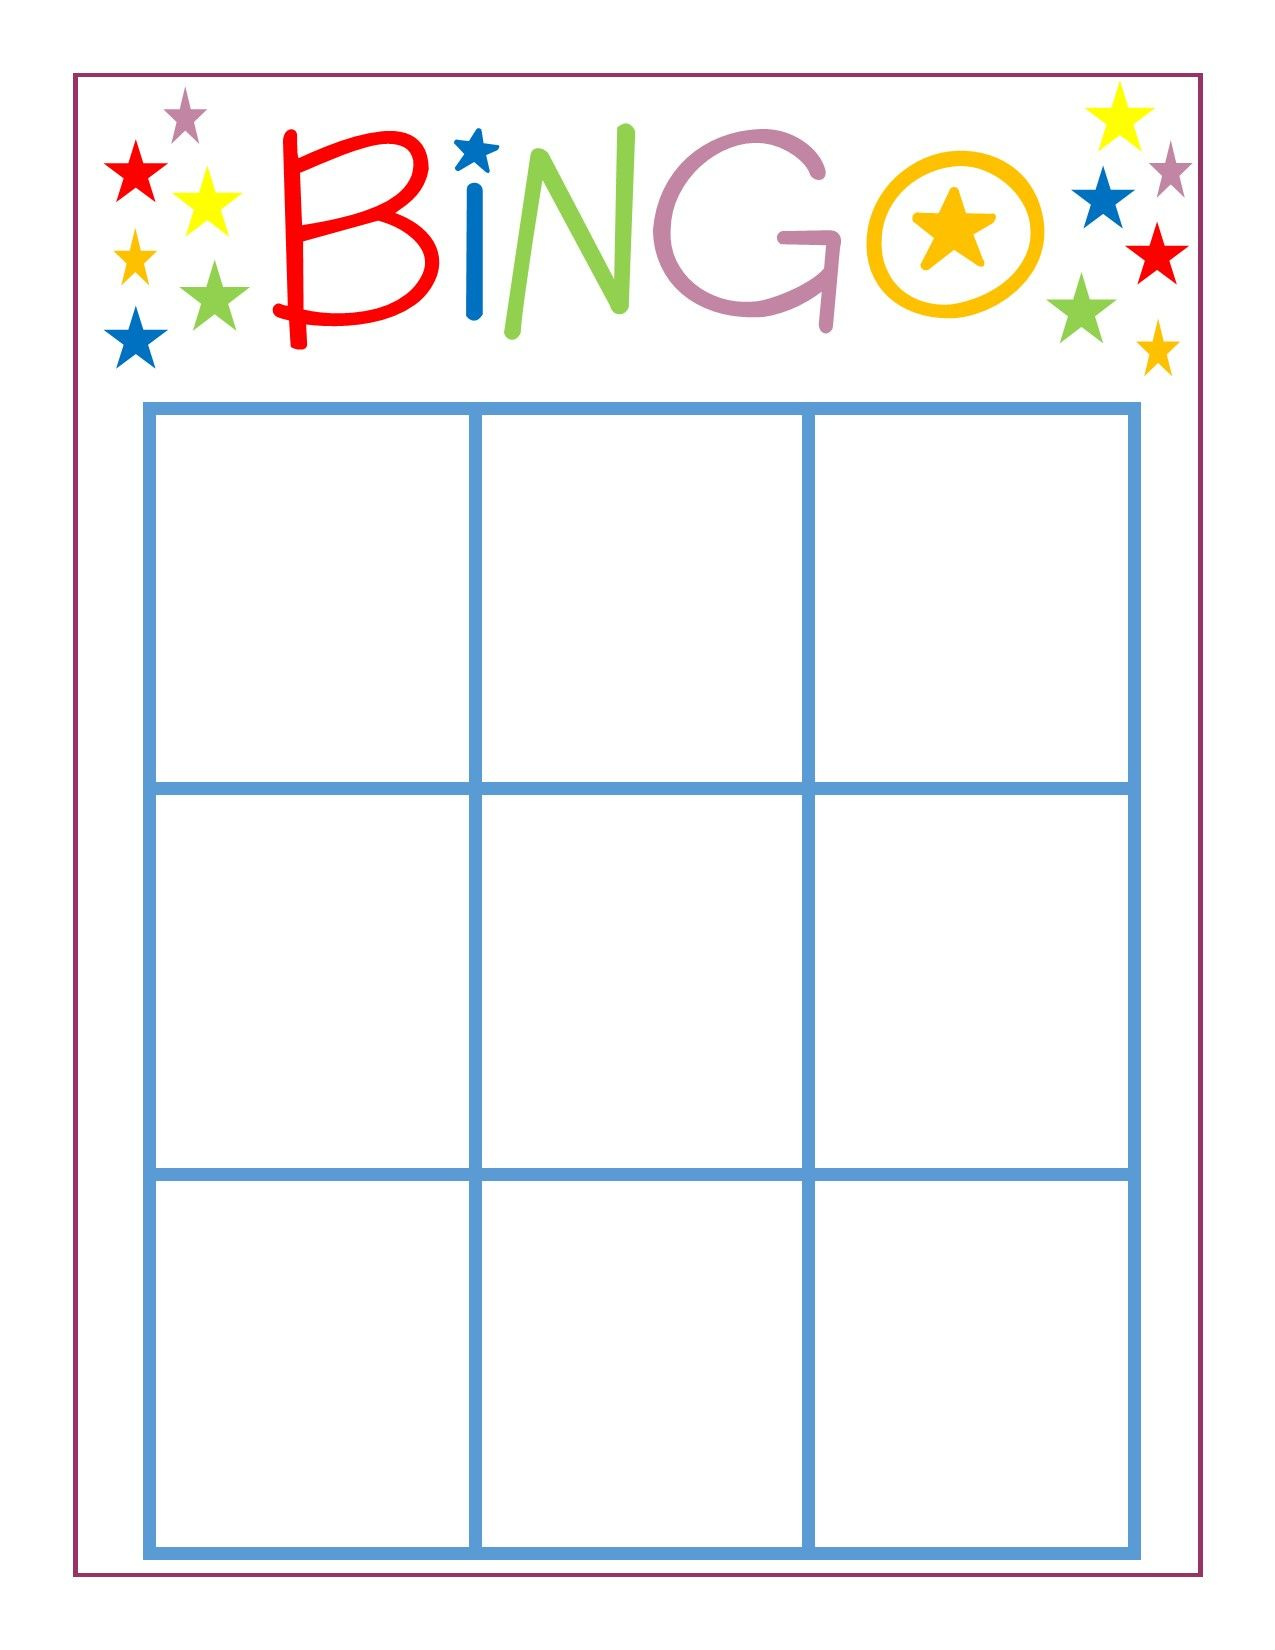 Family Game Night: Bingo (With Images)